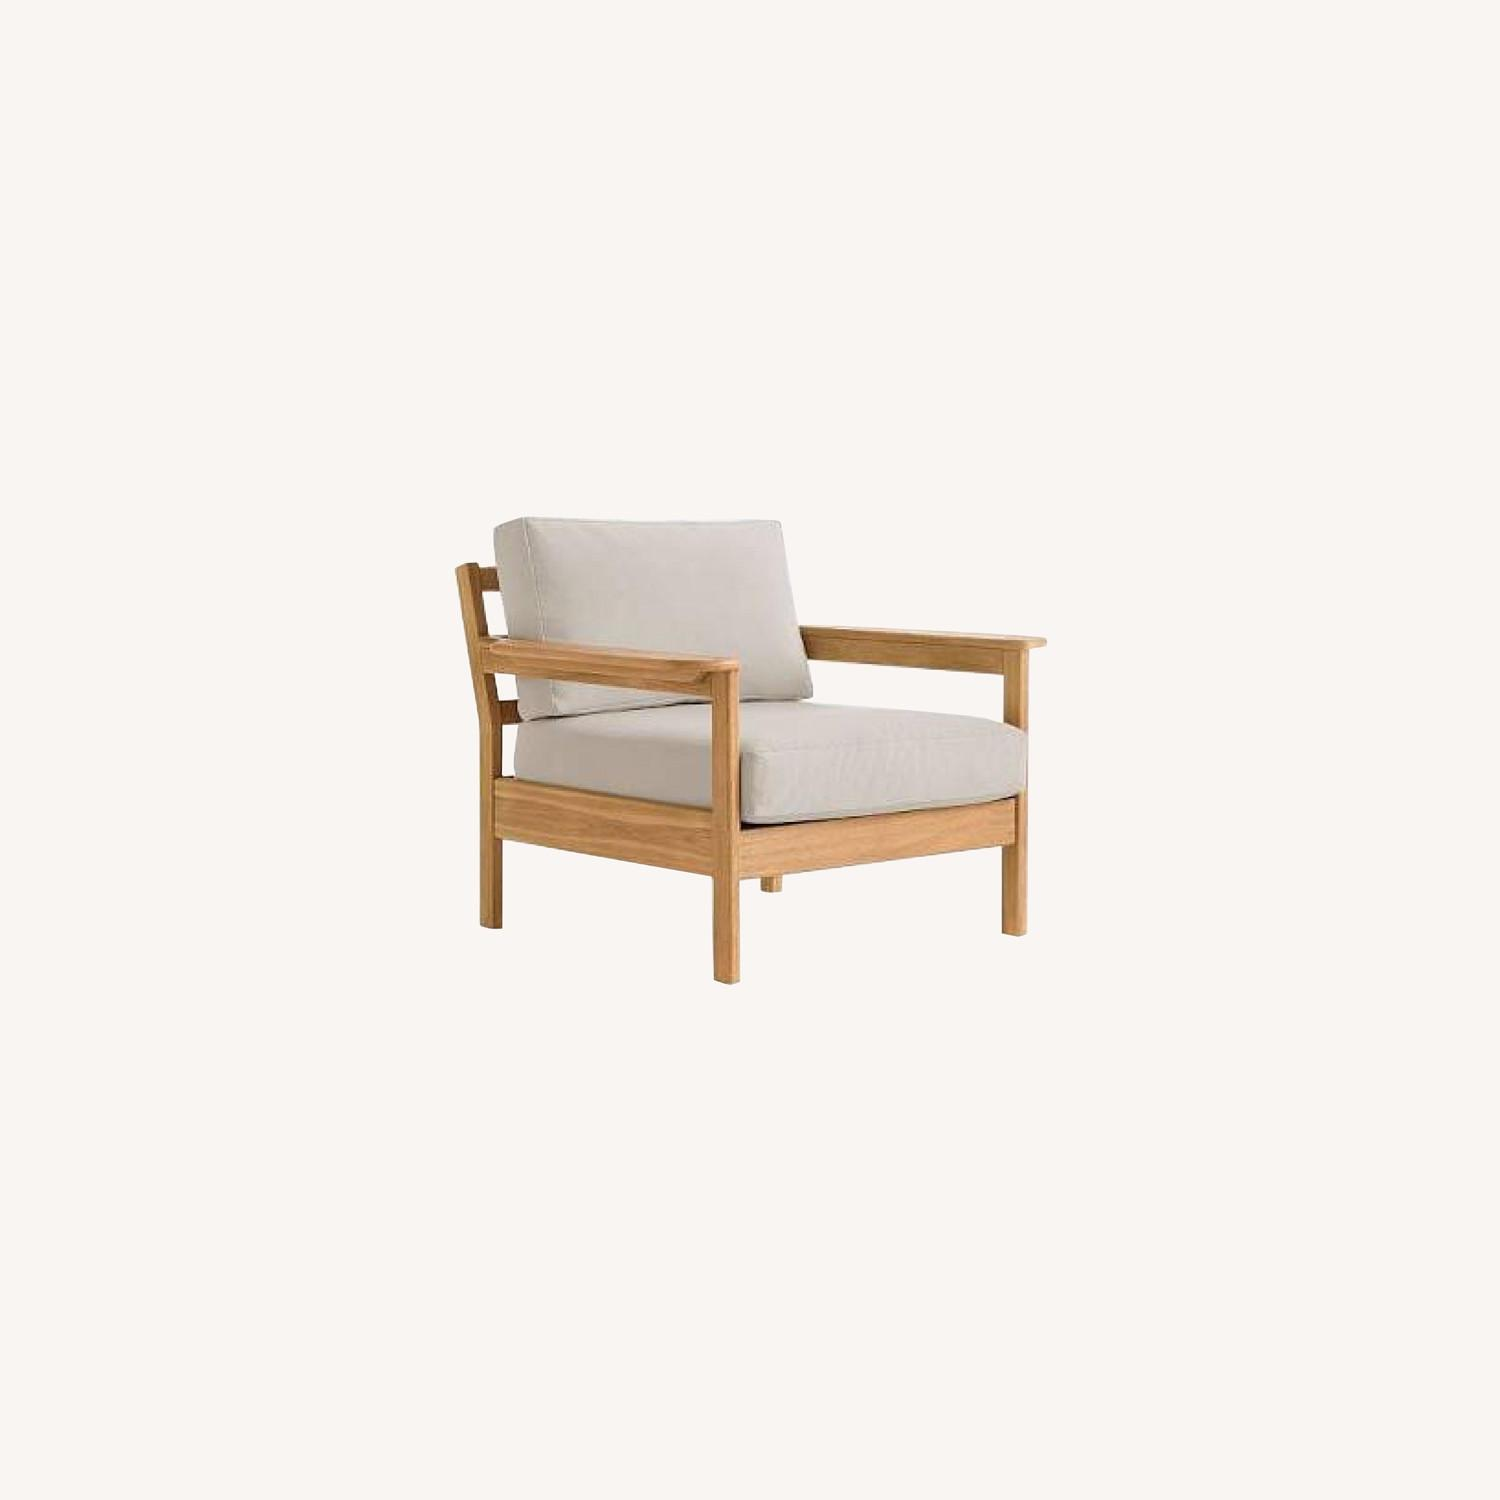 West Elm Playa Outdoor Lounge Chair - image-0